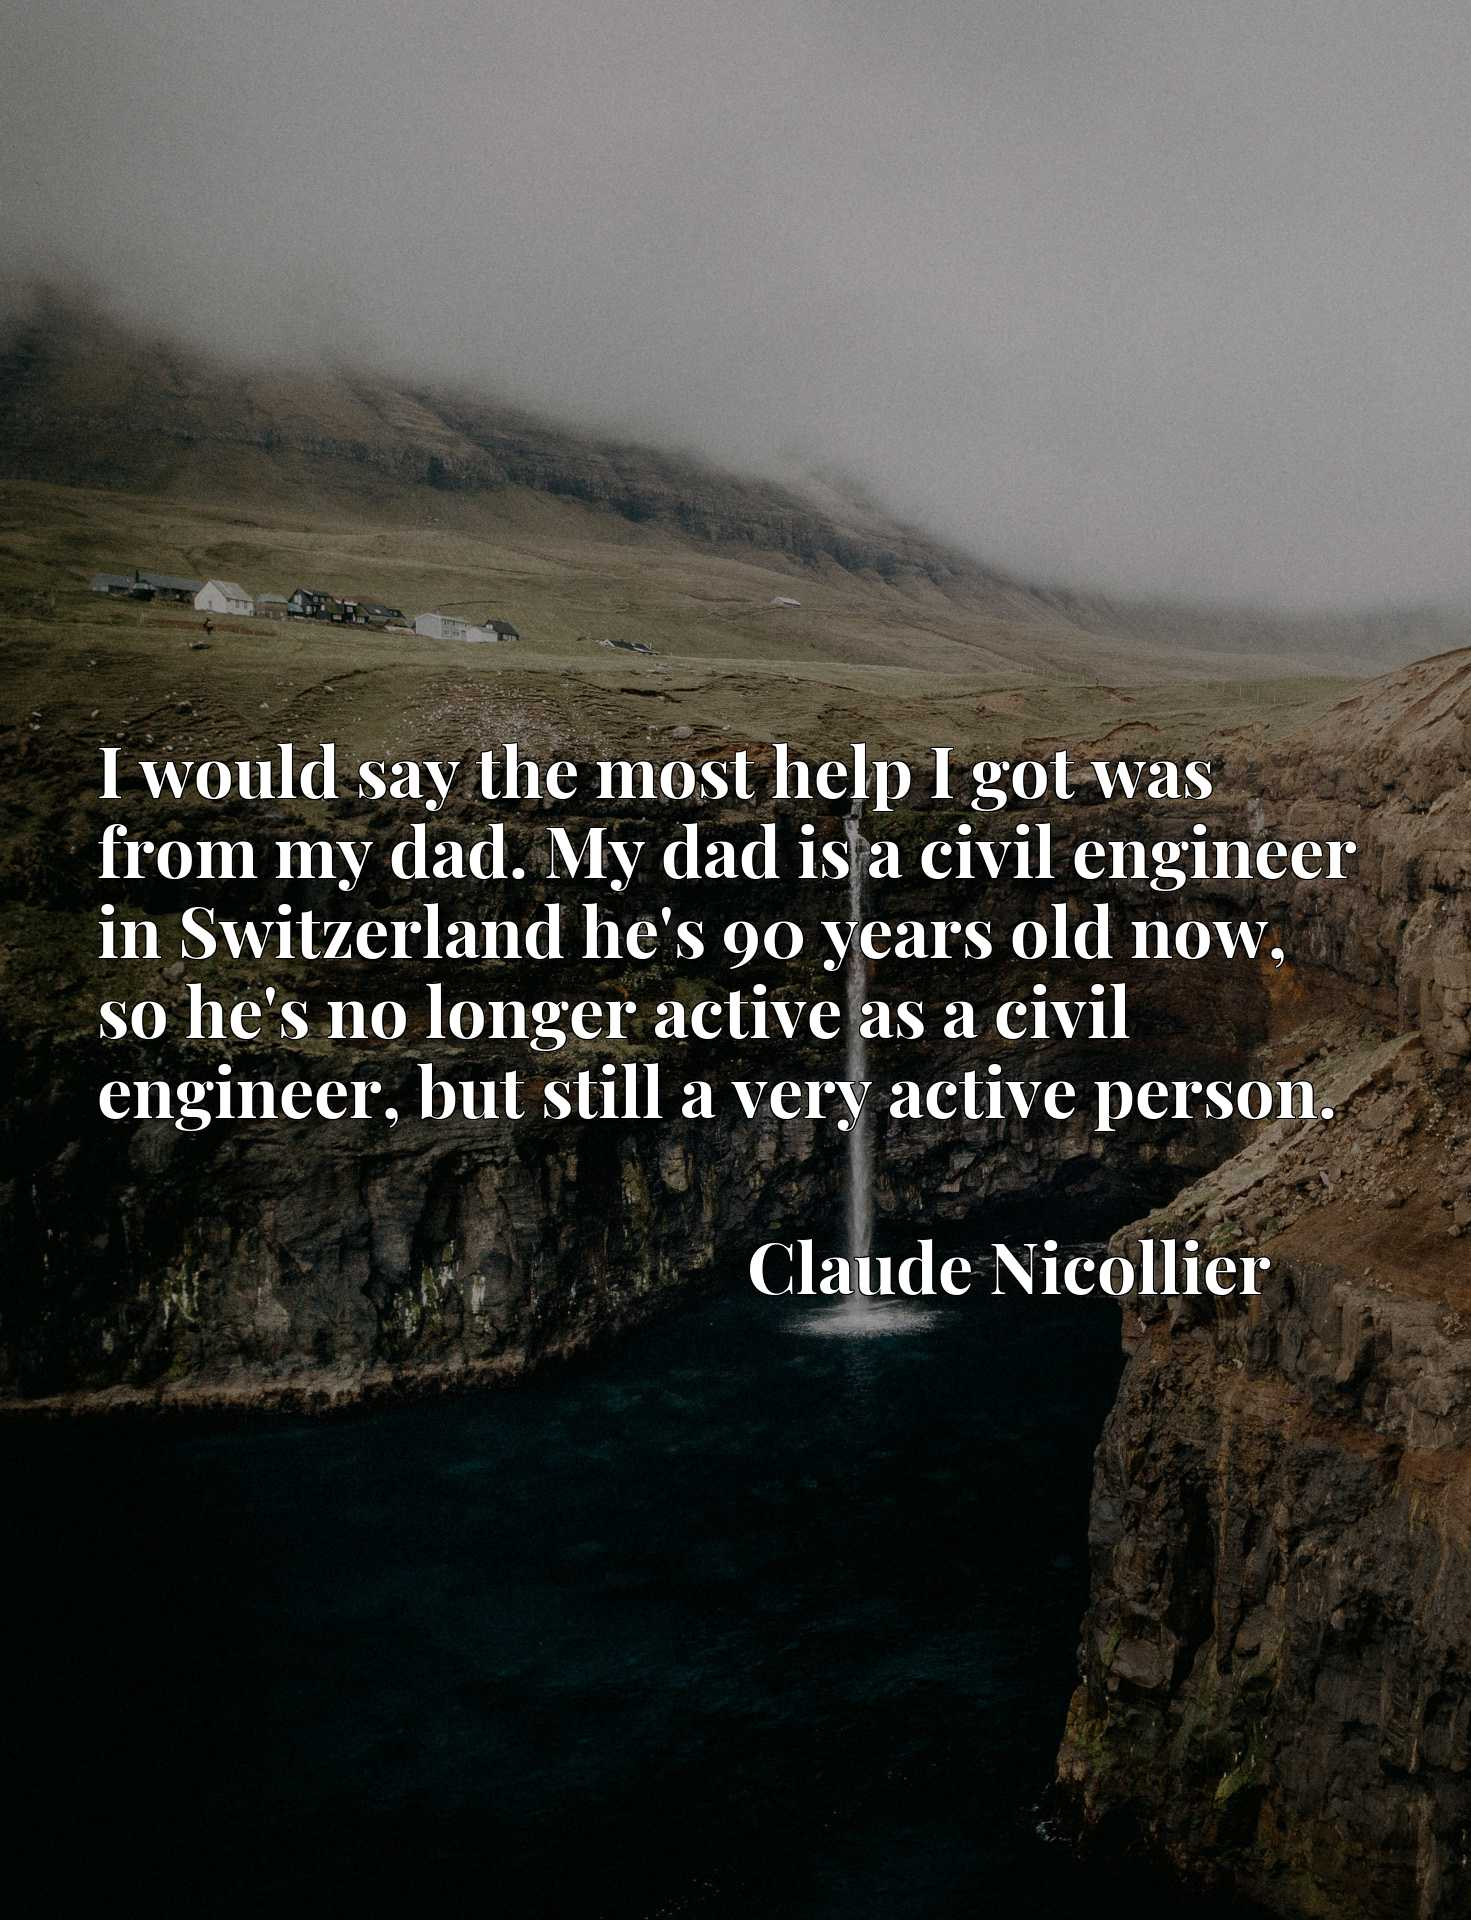 I would say the most help I got was from my dad. My dad is a civil engineer in Switzerland he's 90 years old now, so he's no longer active as a civil engineer, but still a very active person.